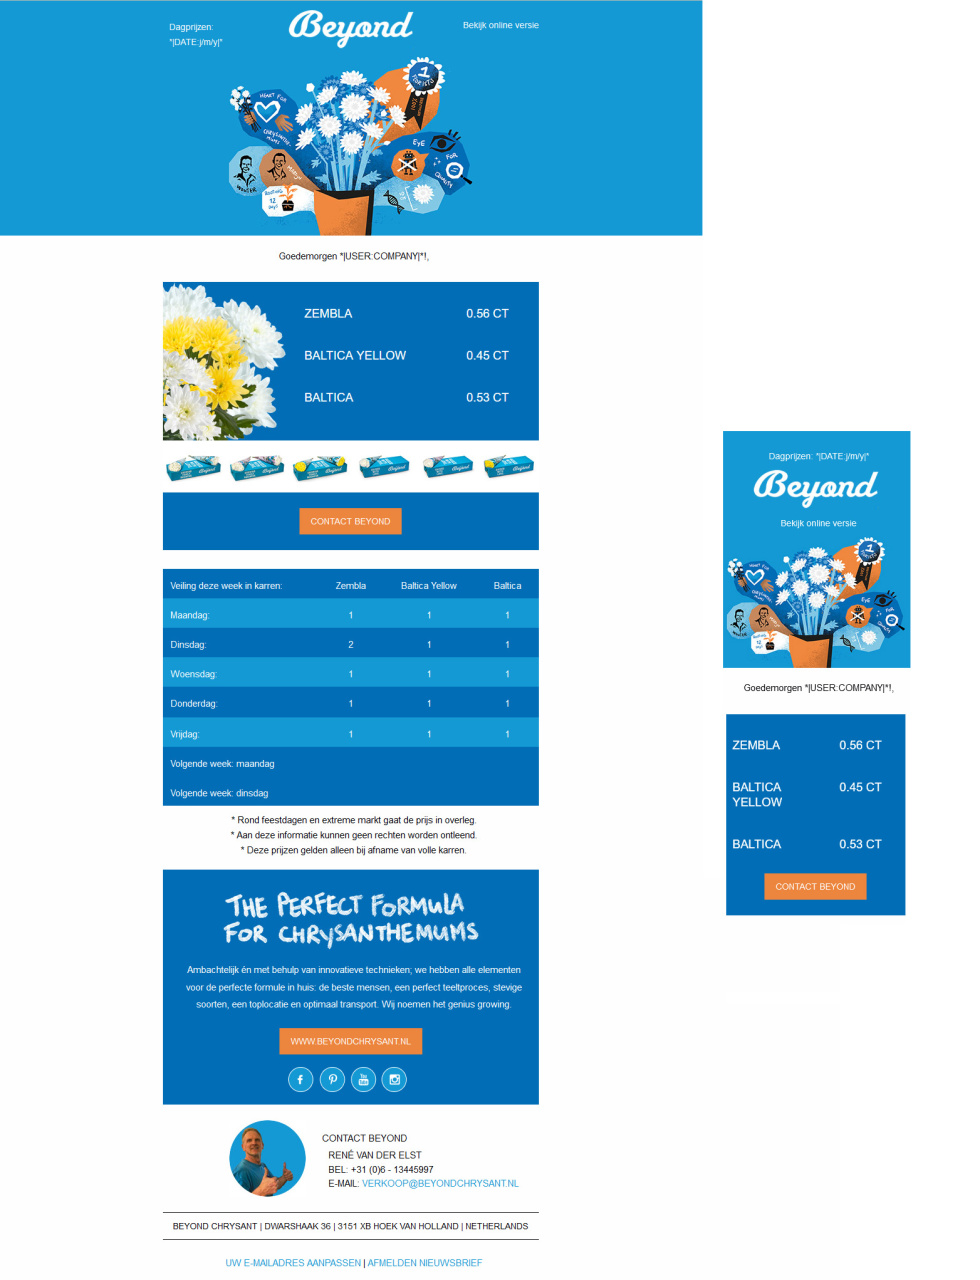 Email template featuring image header, graphic design, images, and text descriptions of products. Various shades of blue contain content against white background. Other colors included are orange and yellow.